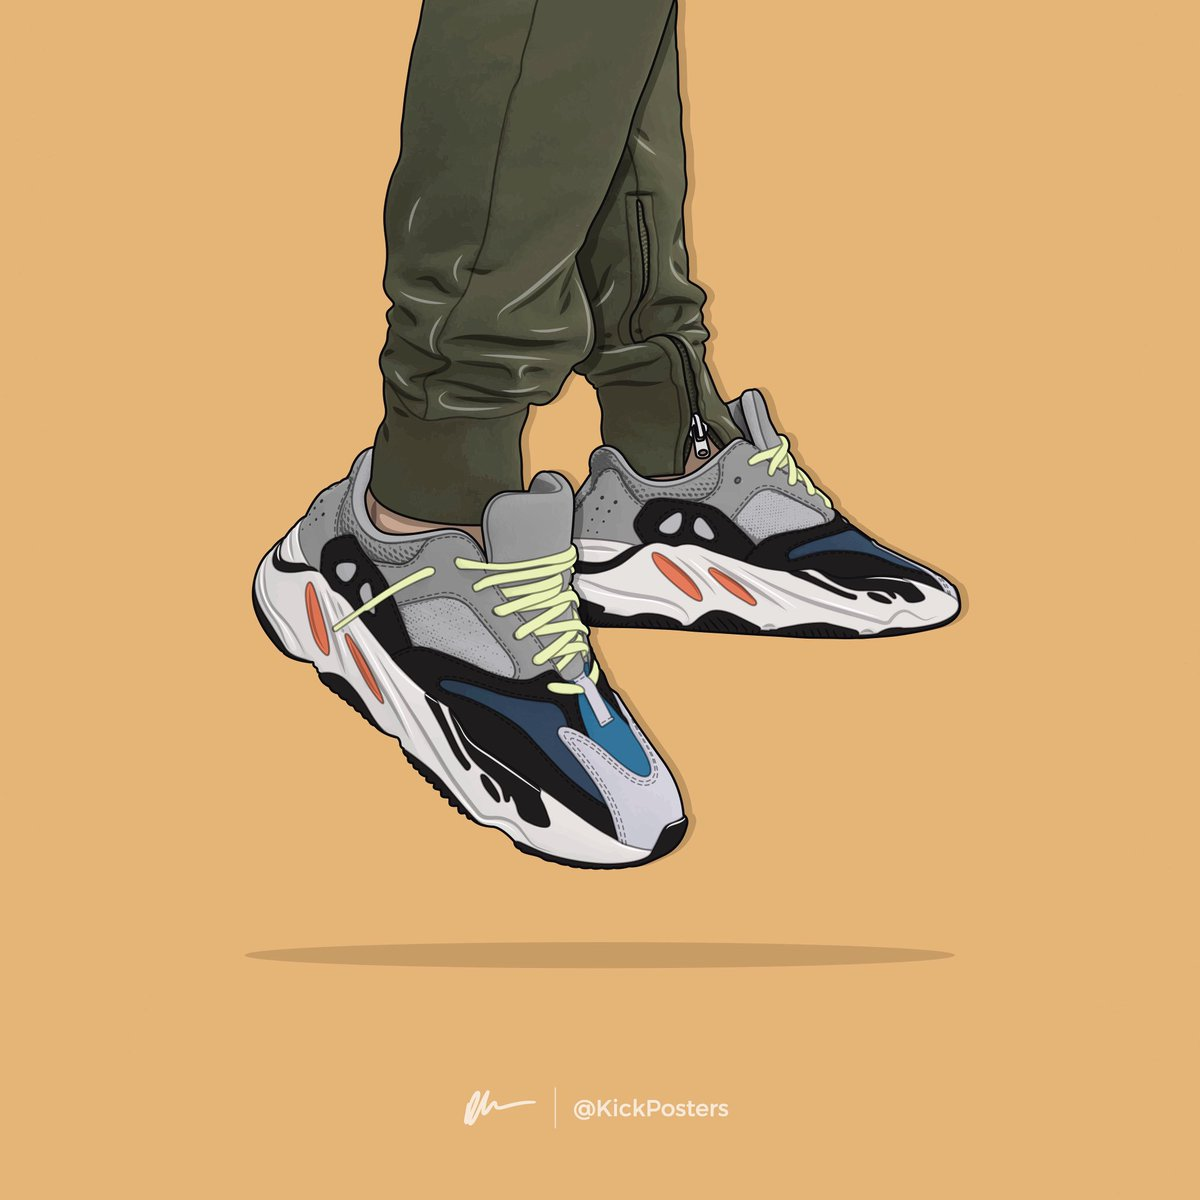 KickPosters by Dan Freebairn on Twitter: What's your